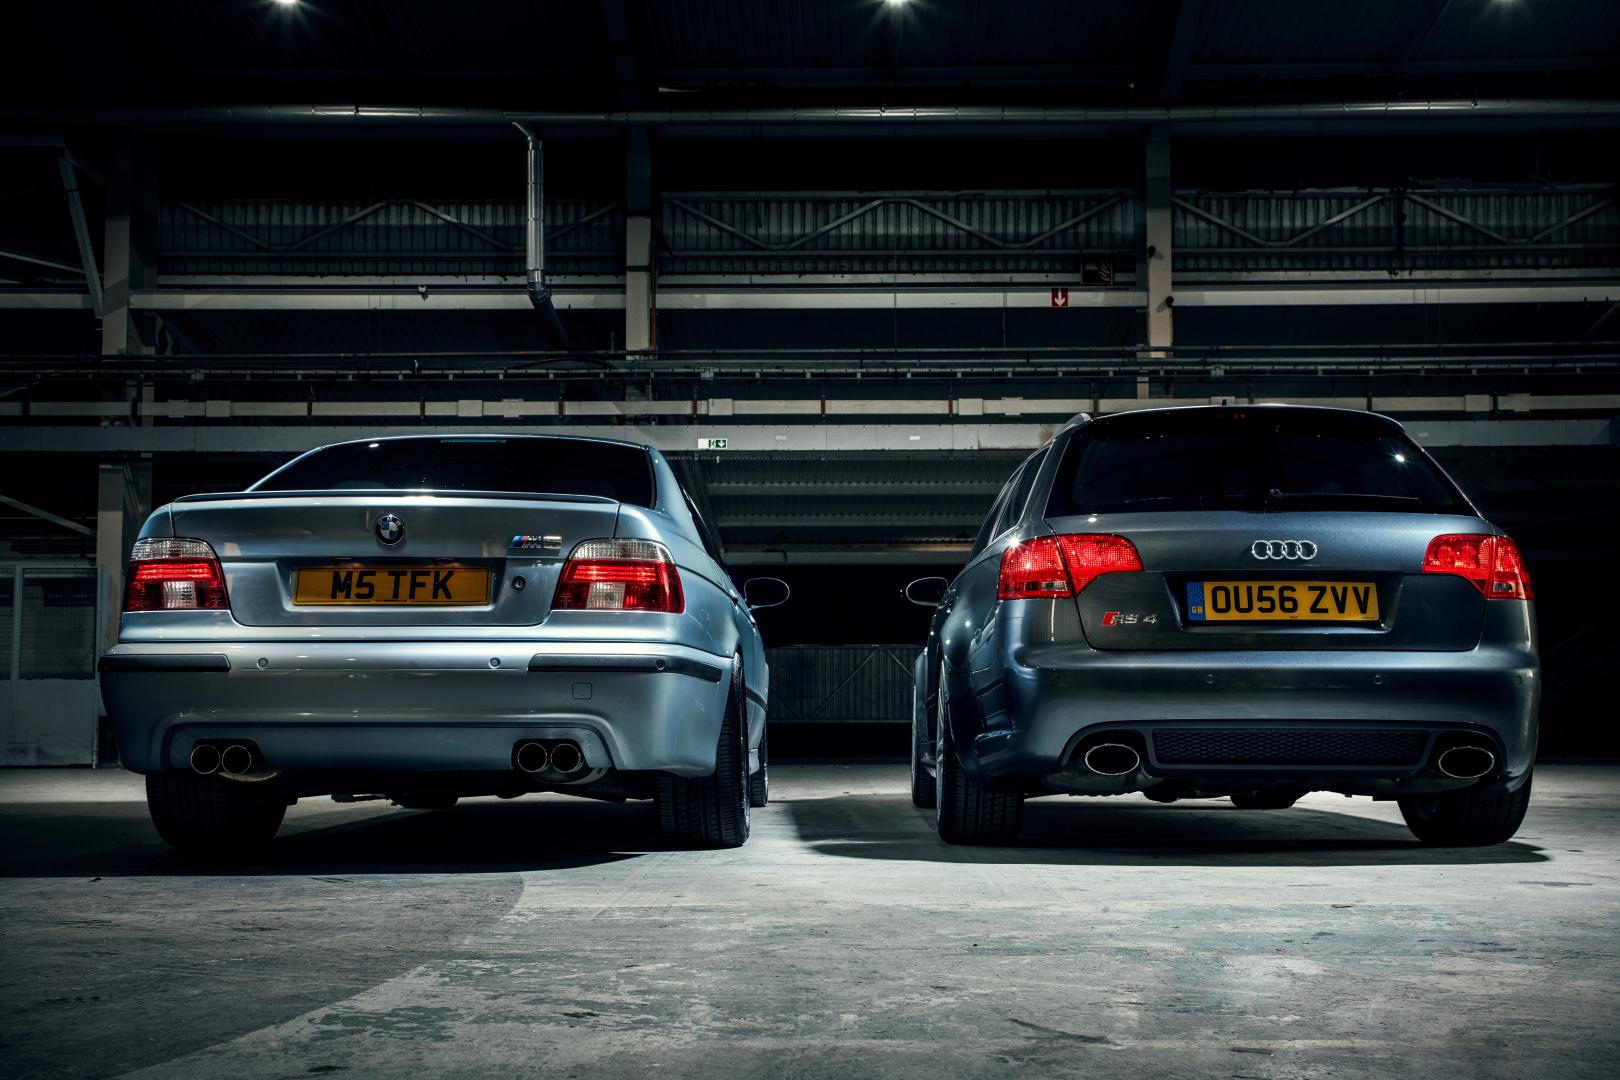 Tweedehands BMW E39 M5 en Audi RS 4